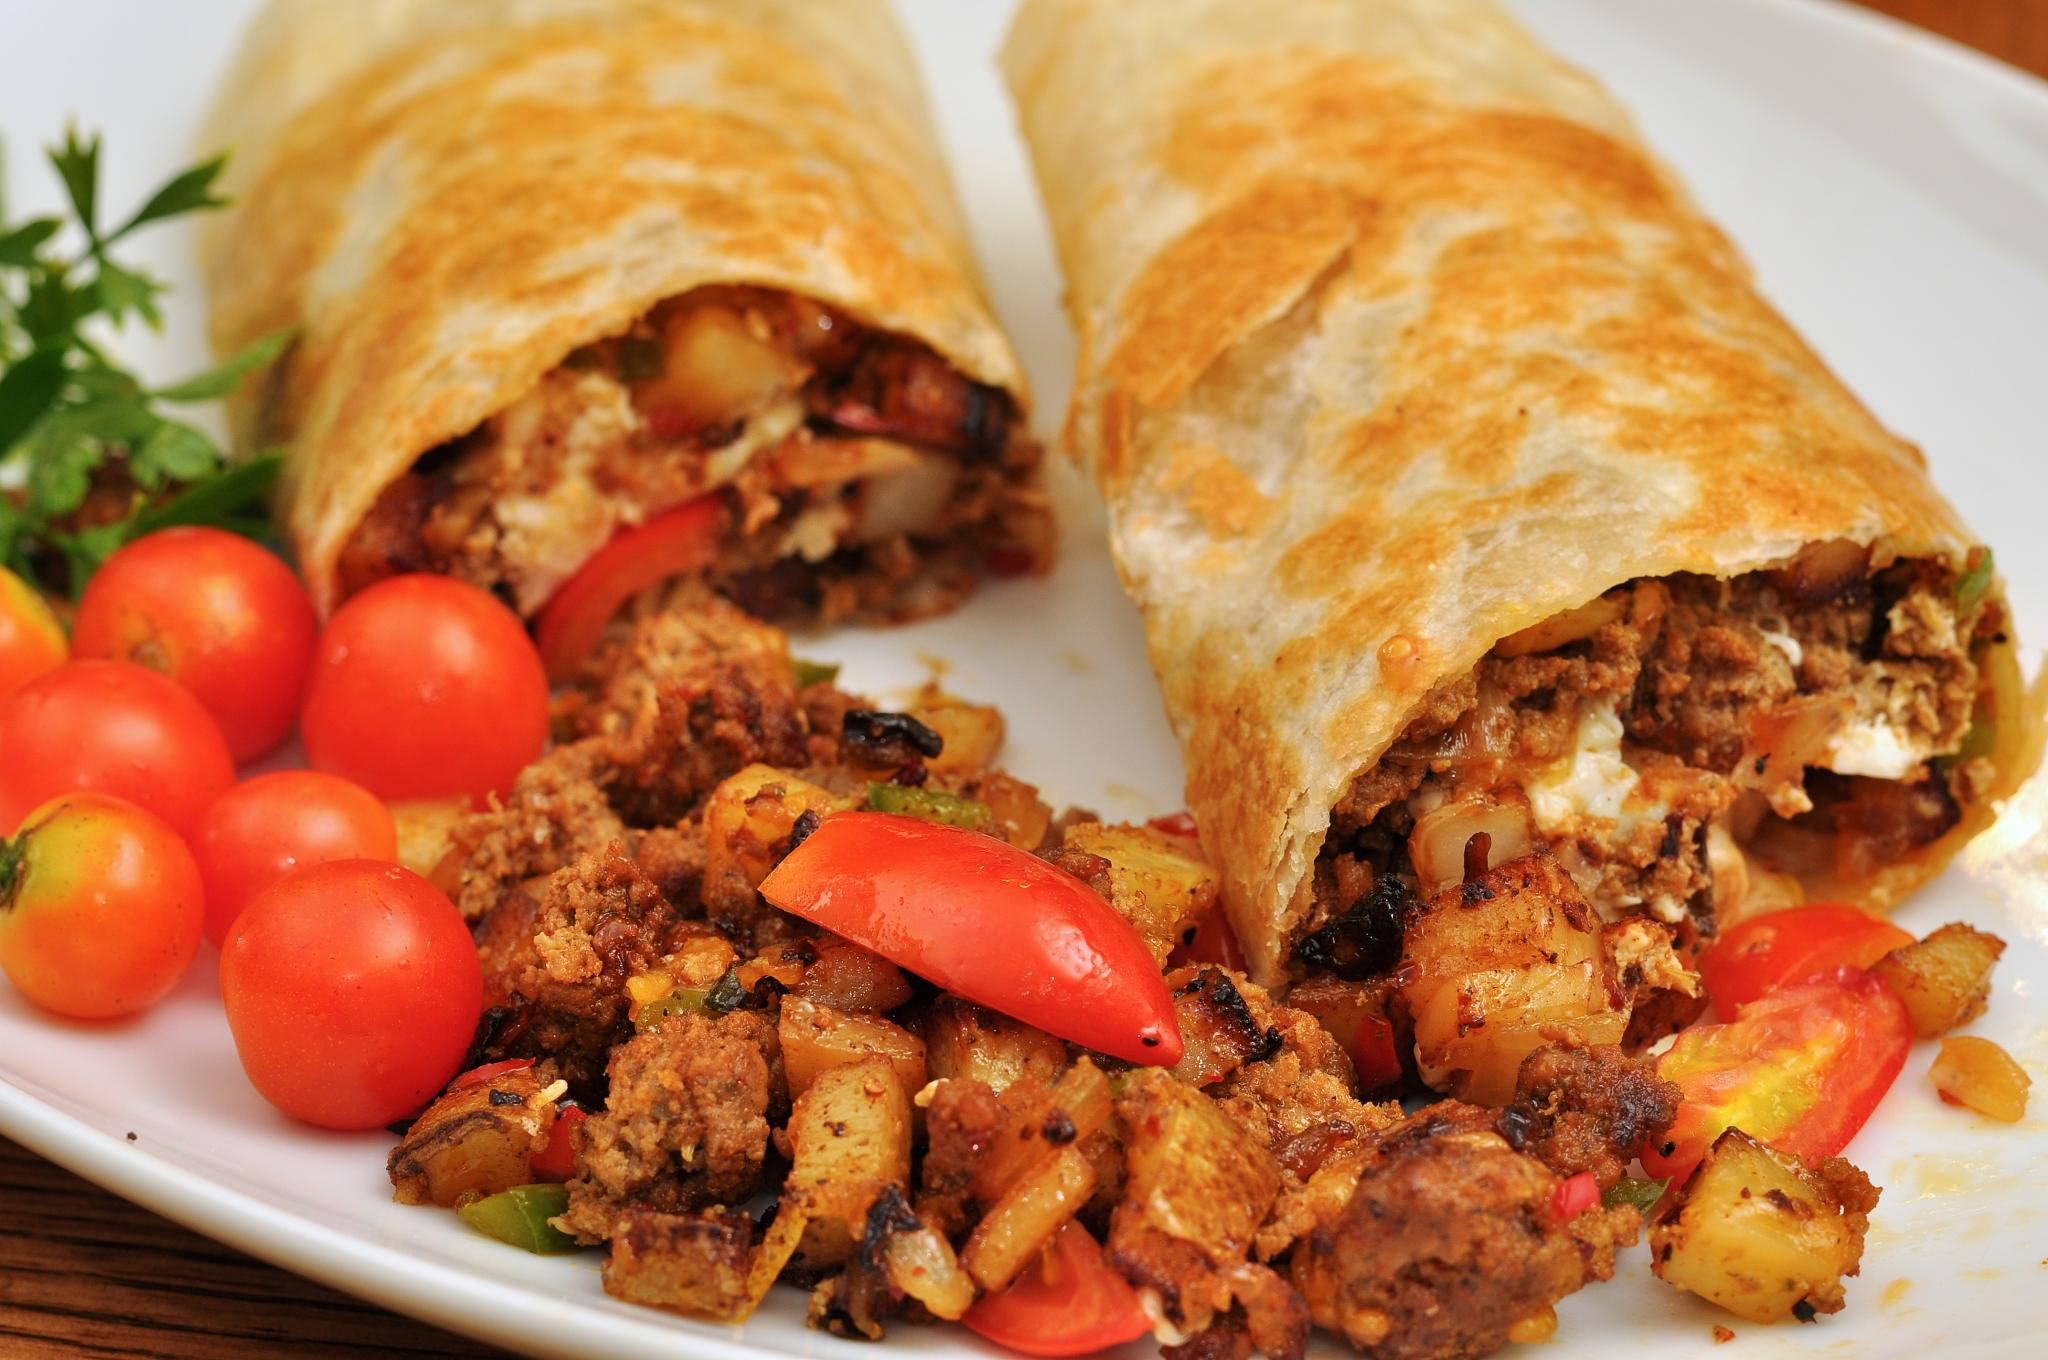 File:Breakfast burritos.jpg - Wikimedia Commons